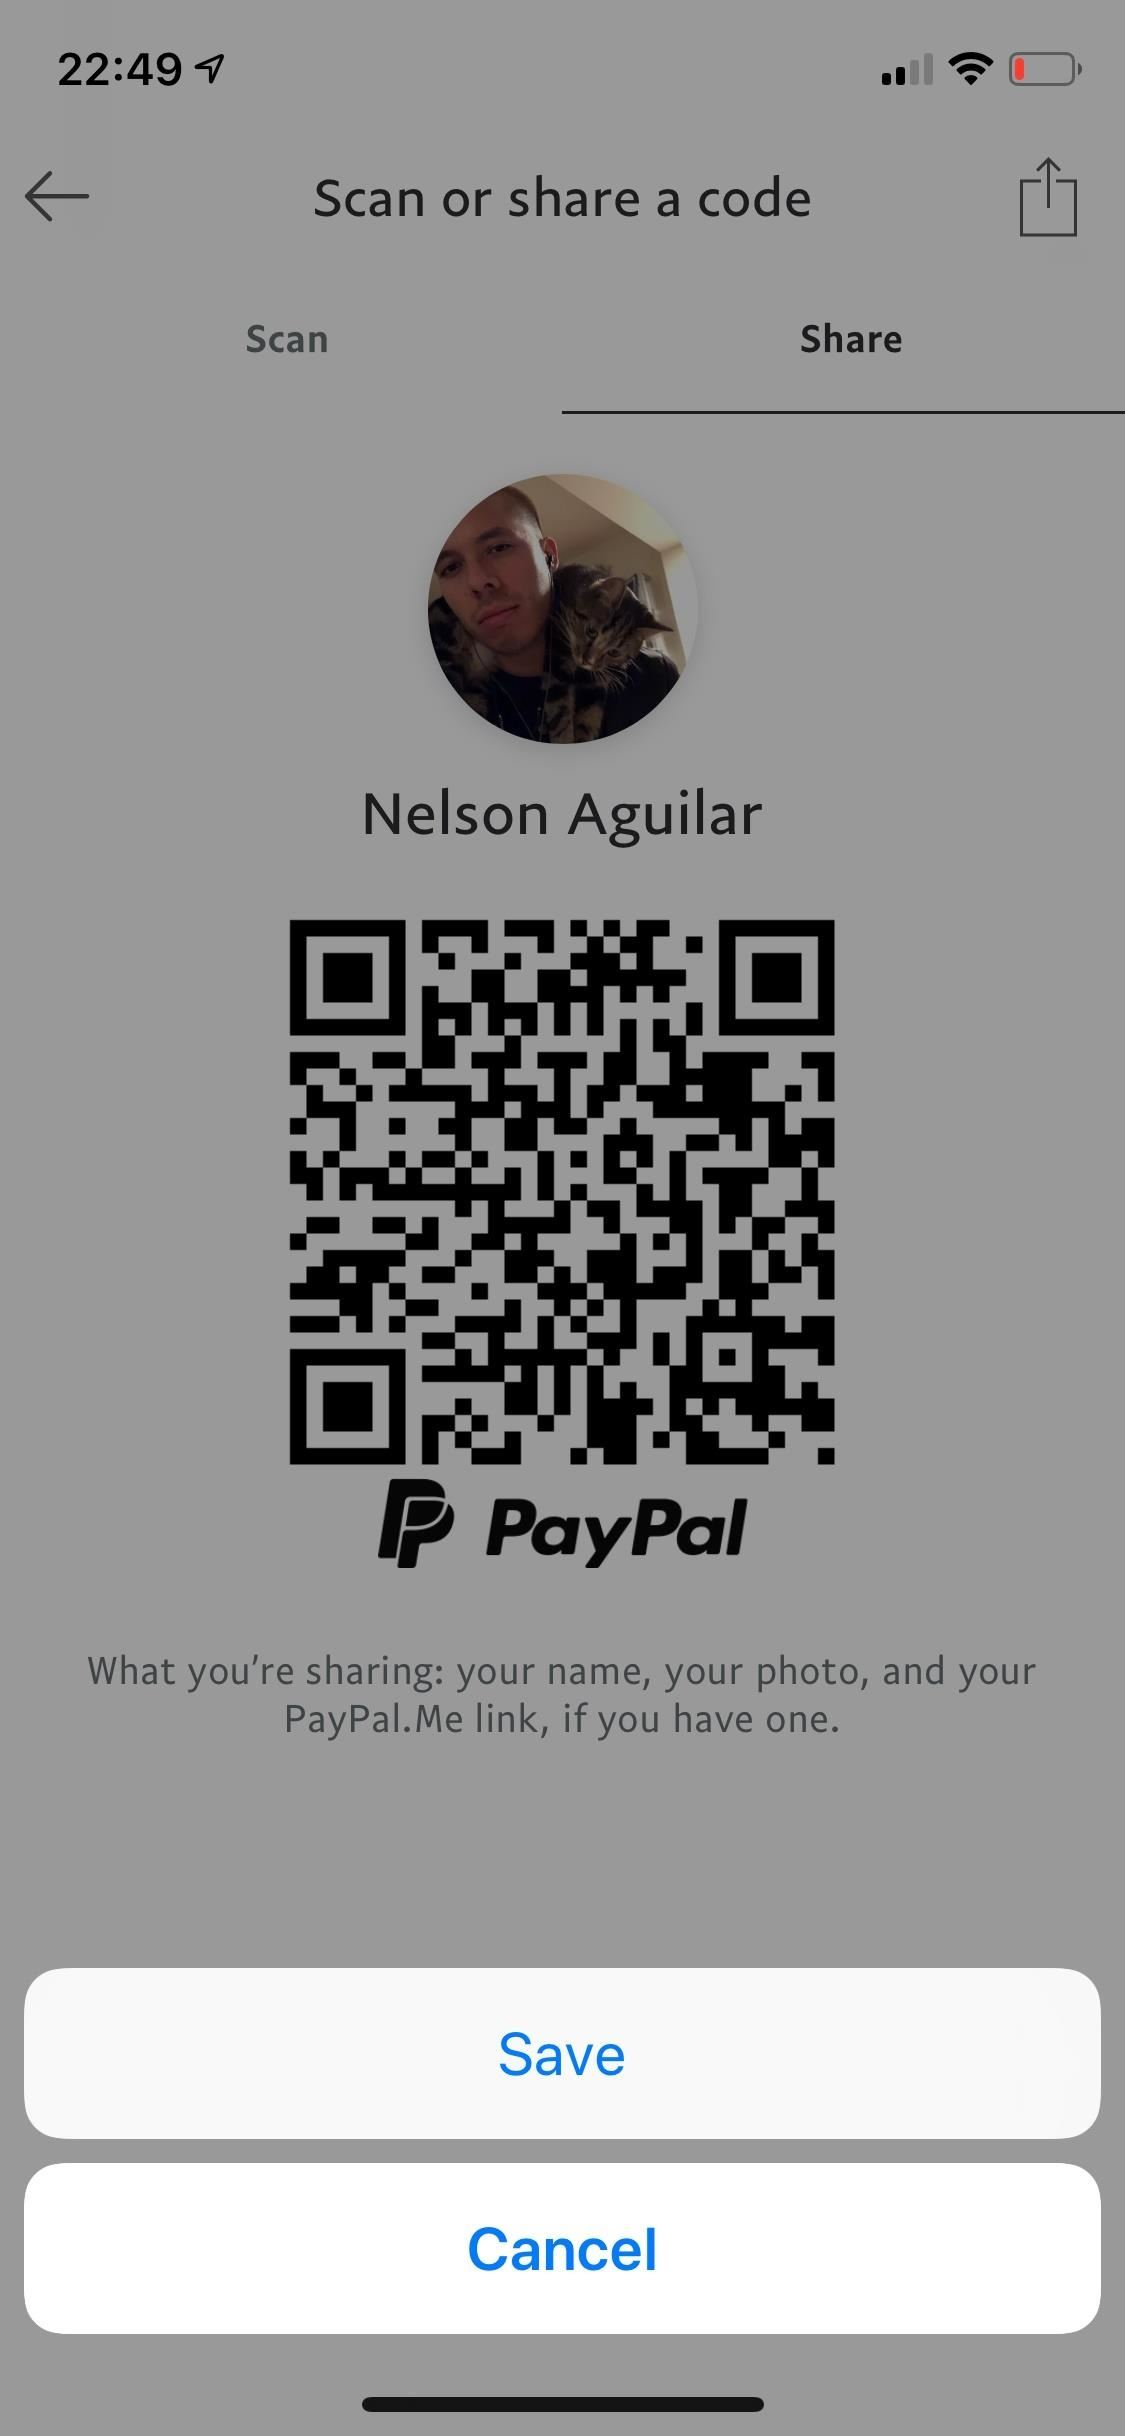 Sending and scanning PayPal QR codes for faster transactions when receiving or sending money